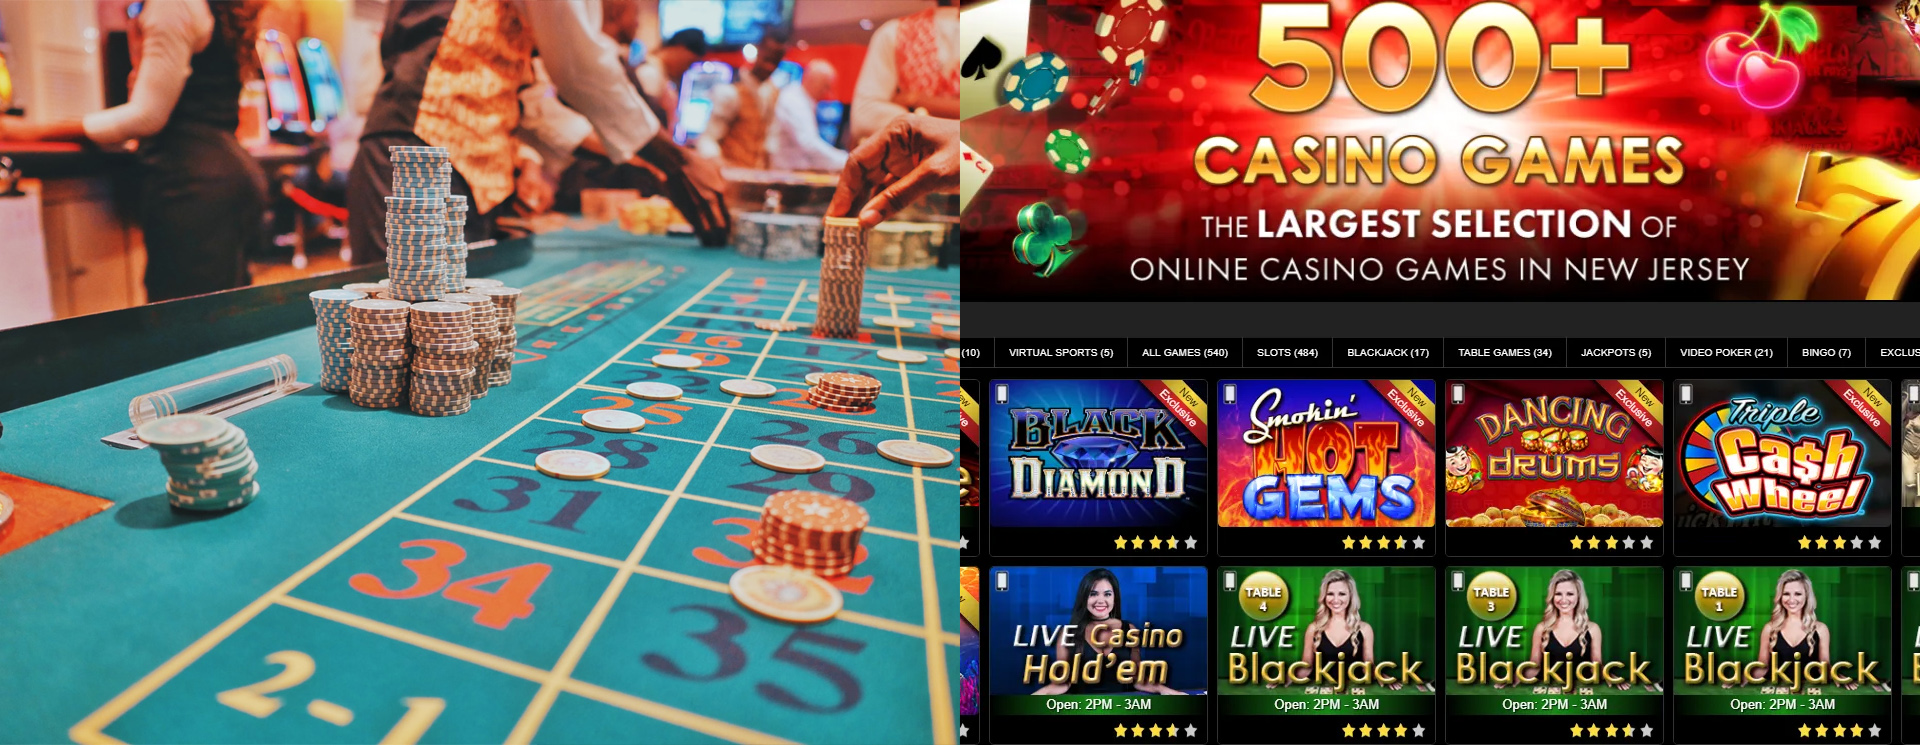 online or a land-based casino